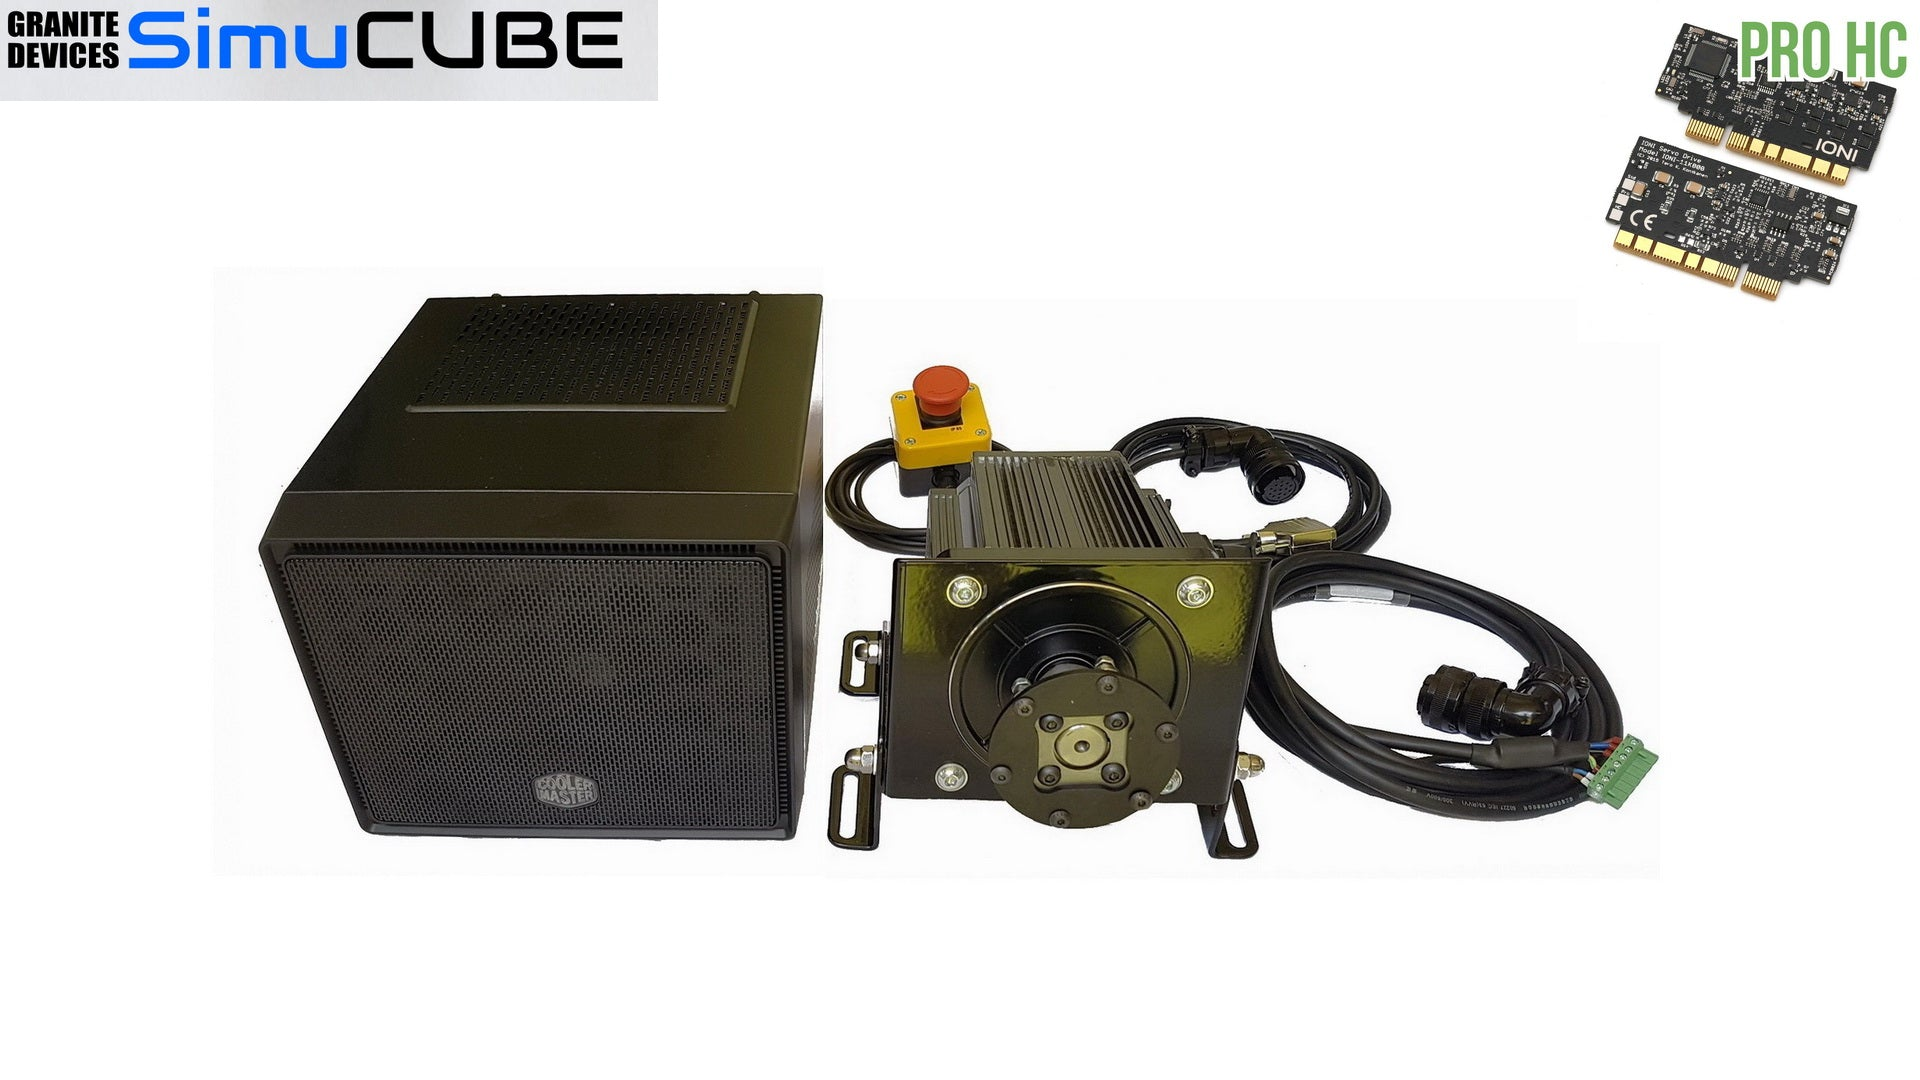 simucube osw from simracingbay fasttracksims com